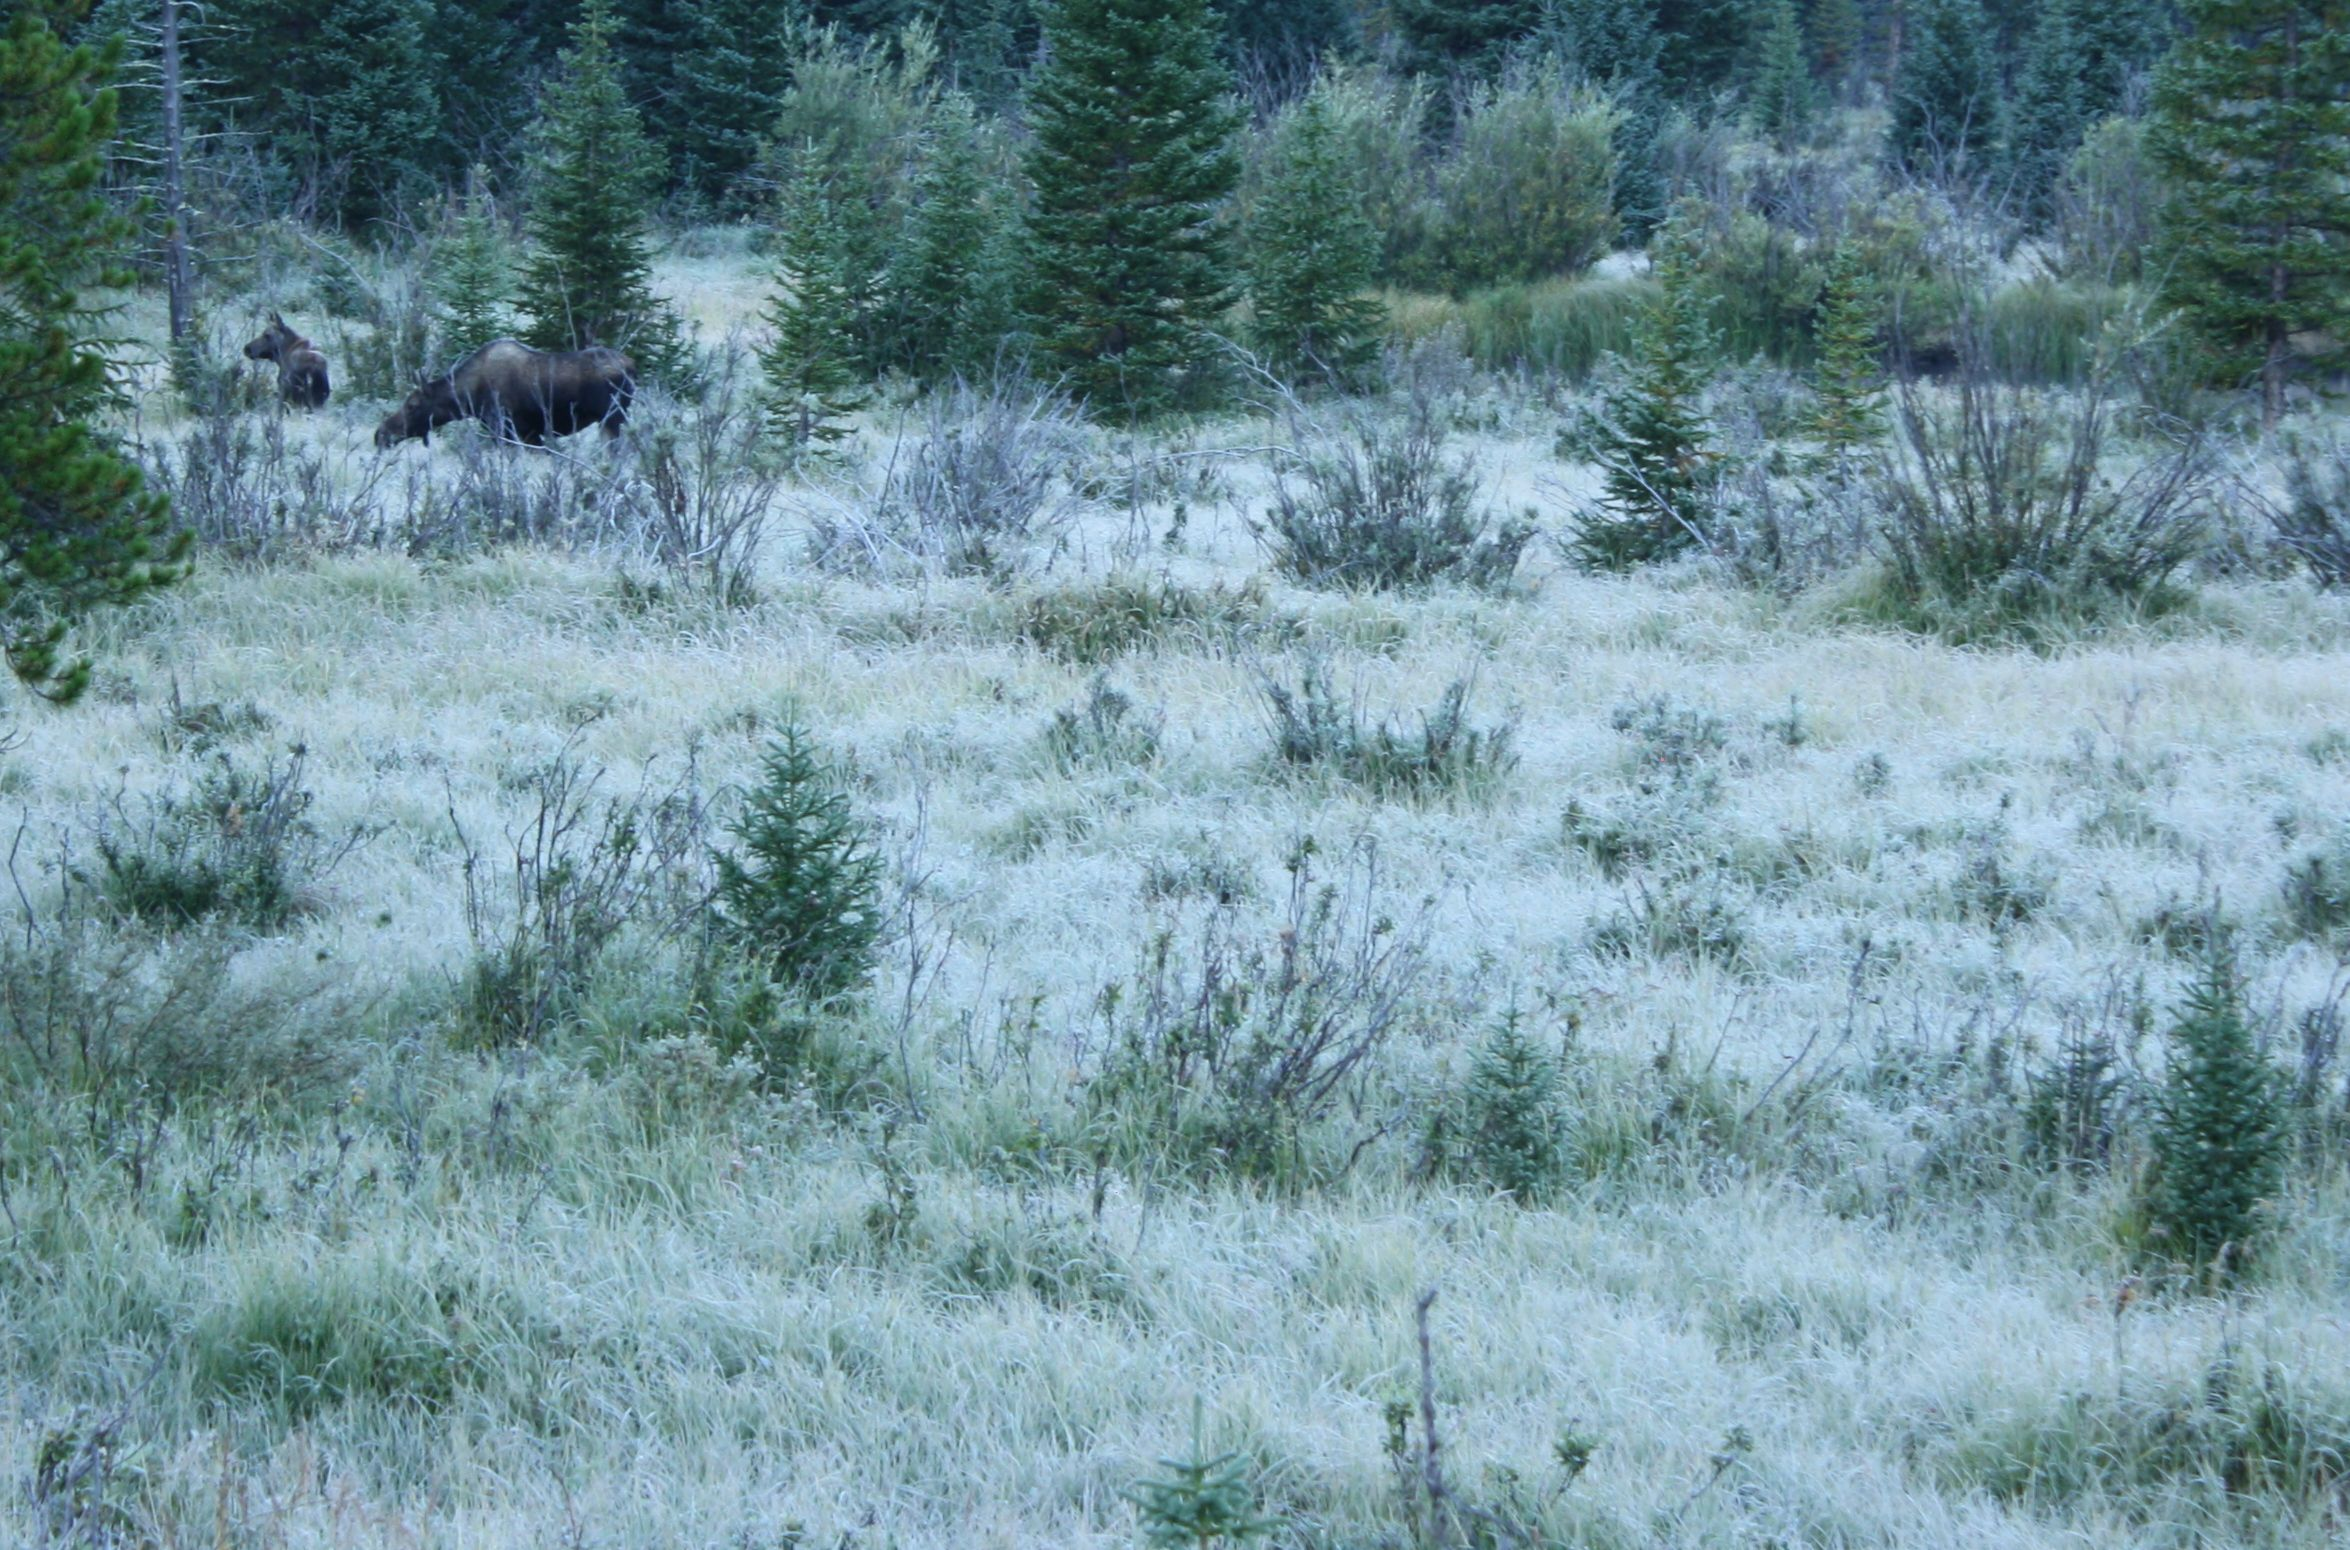 moose momma and calf